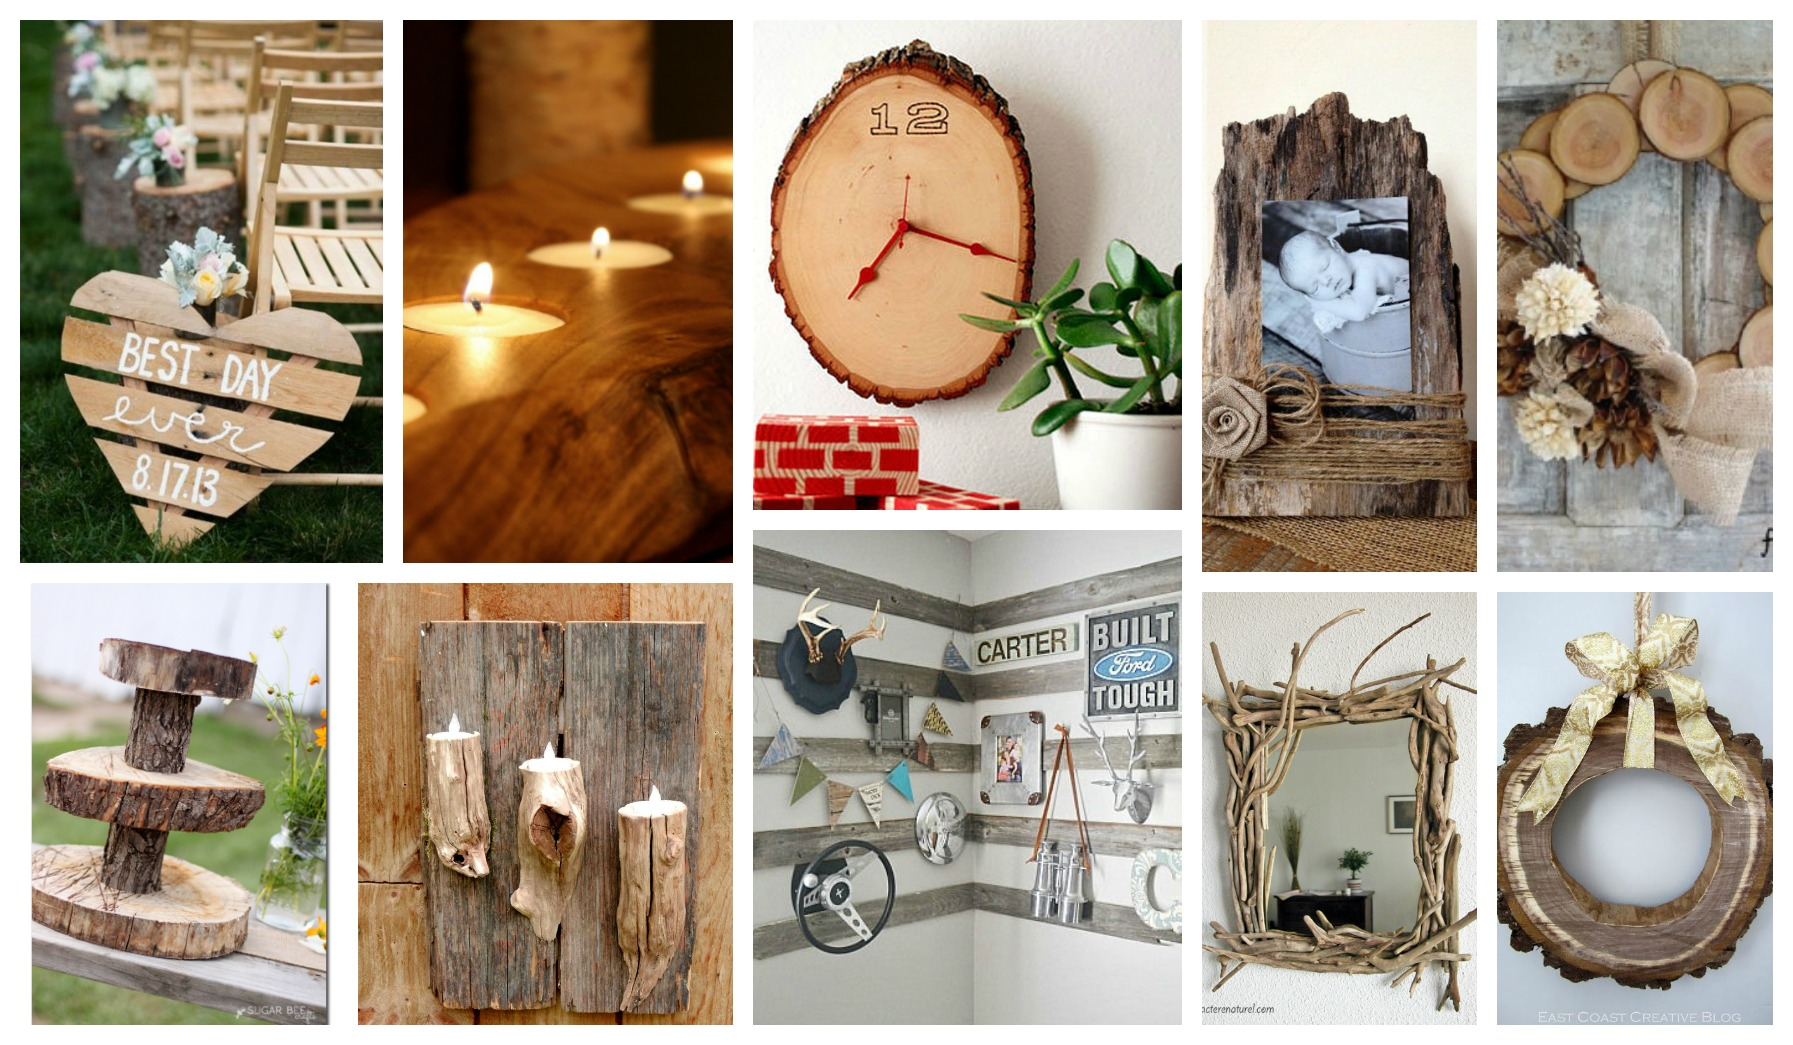 Stupendous DIY Rustic Wood Decor That Will Make You Say Wow